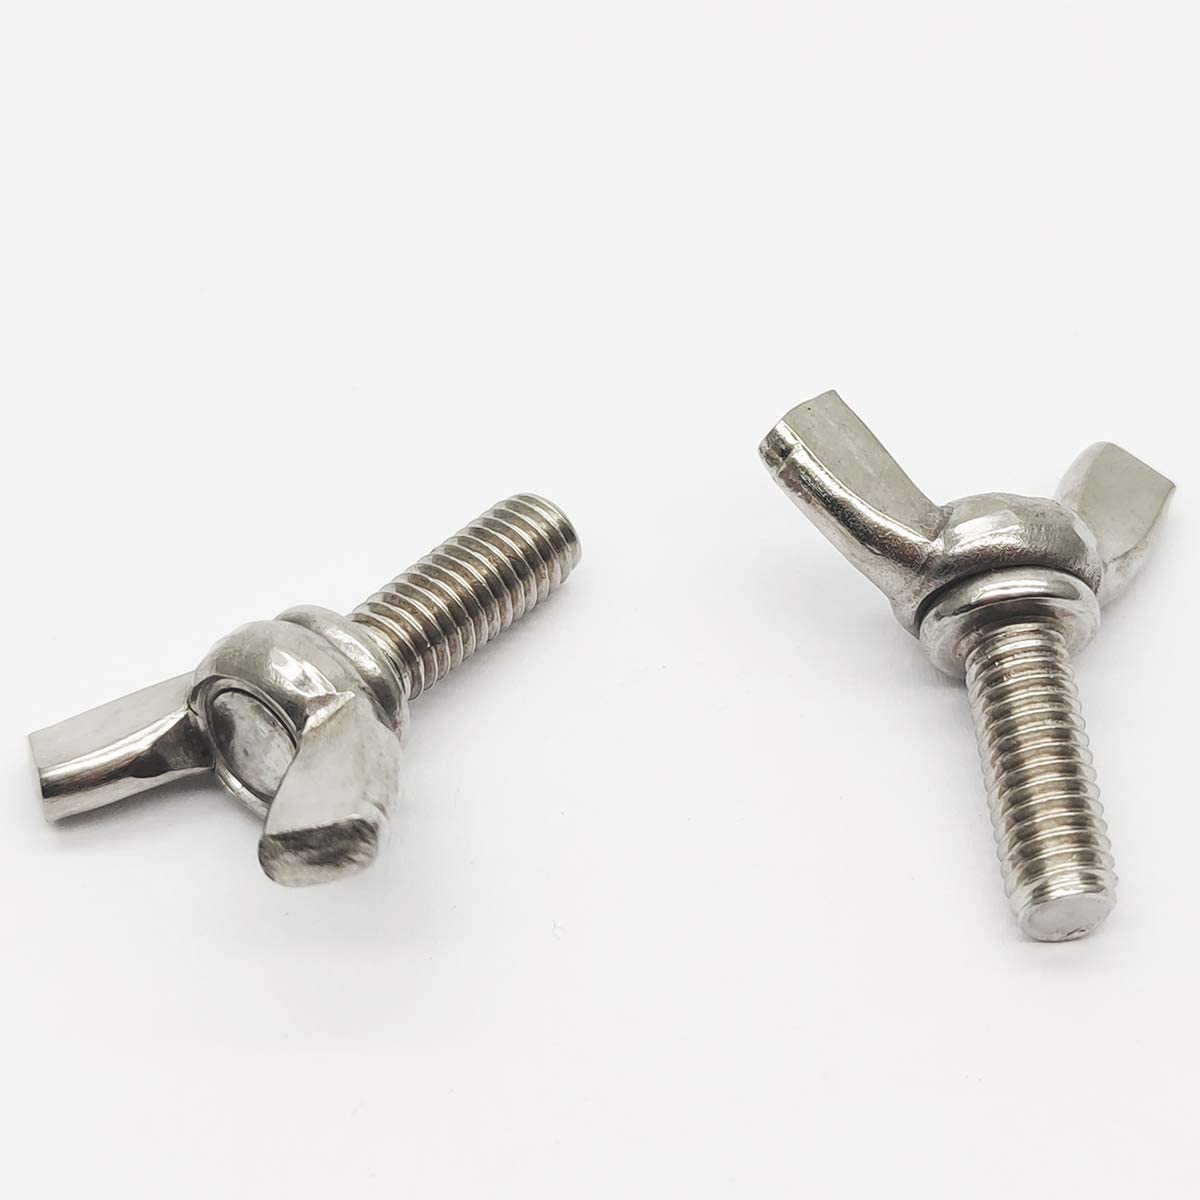 Wing Bolt Wing Screw Stainless Steel Butterfly Bolt Screw Thumb Hand Screws 10pcs M6-1.0x16mm